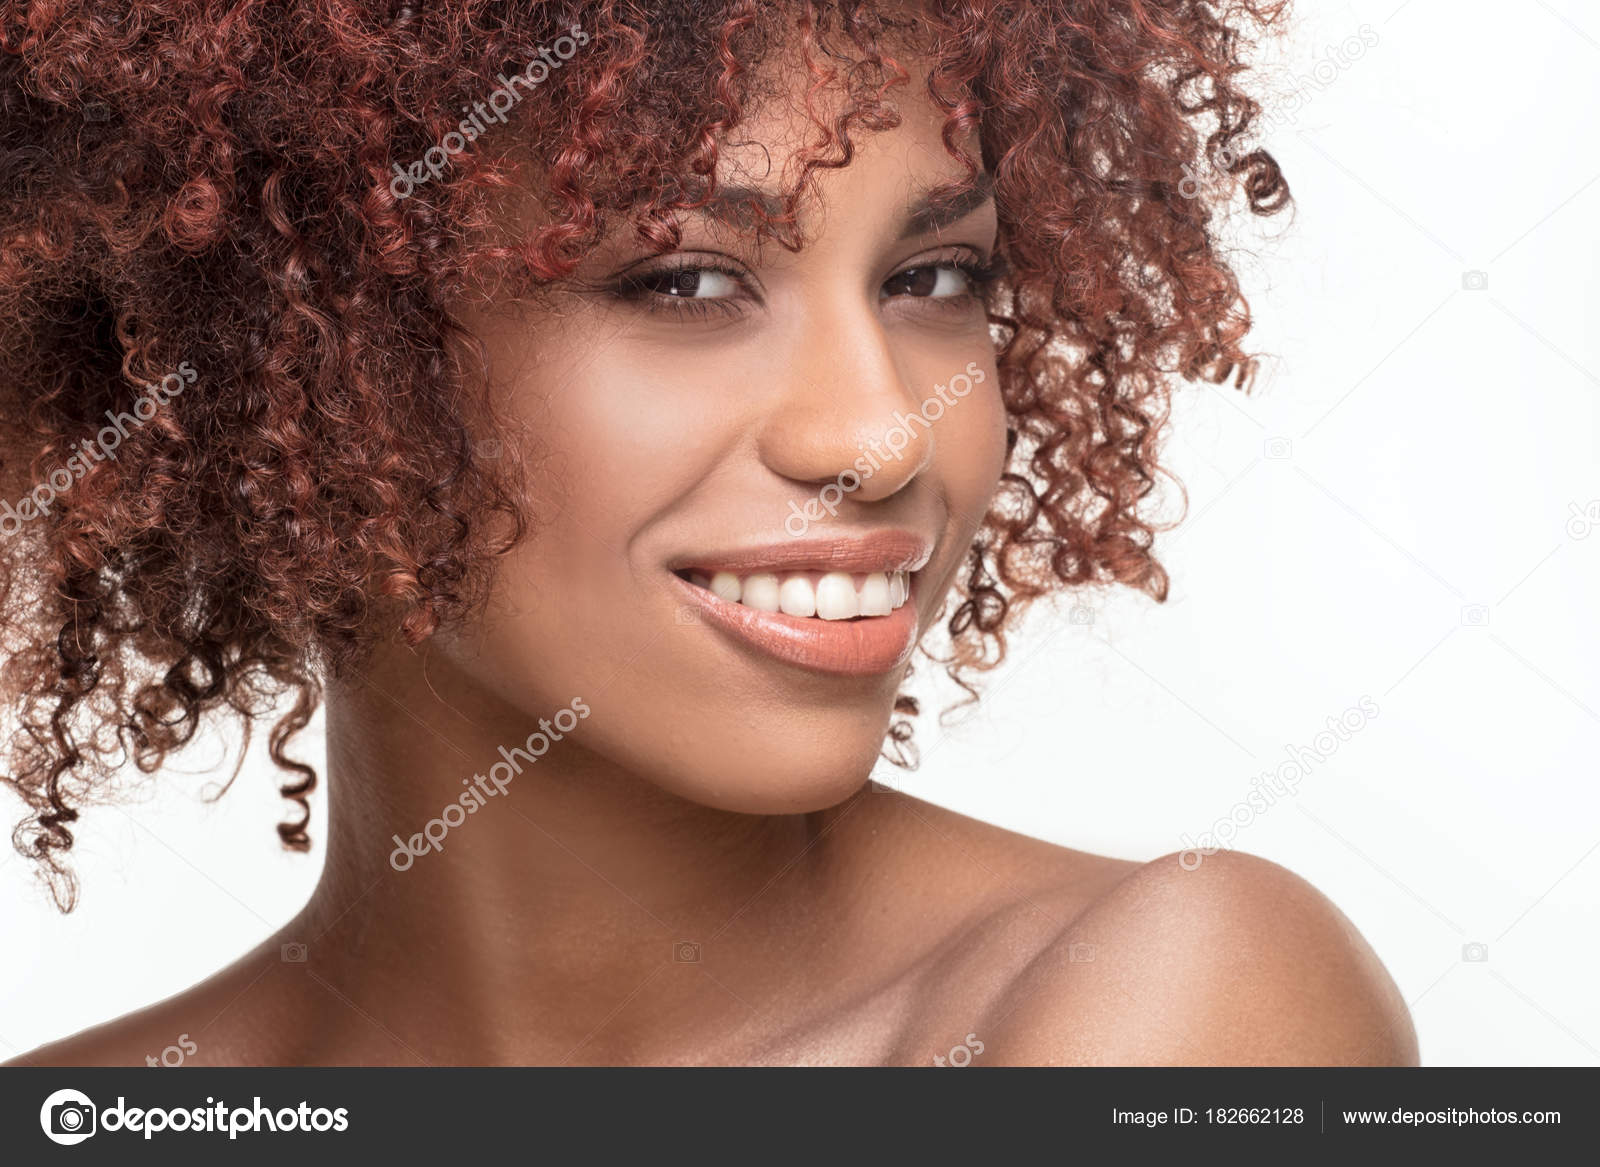 Images African American Natural Hairstyles Beauty Portrait Of